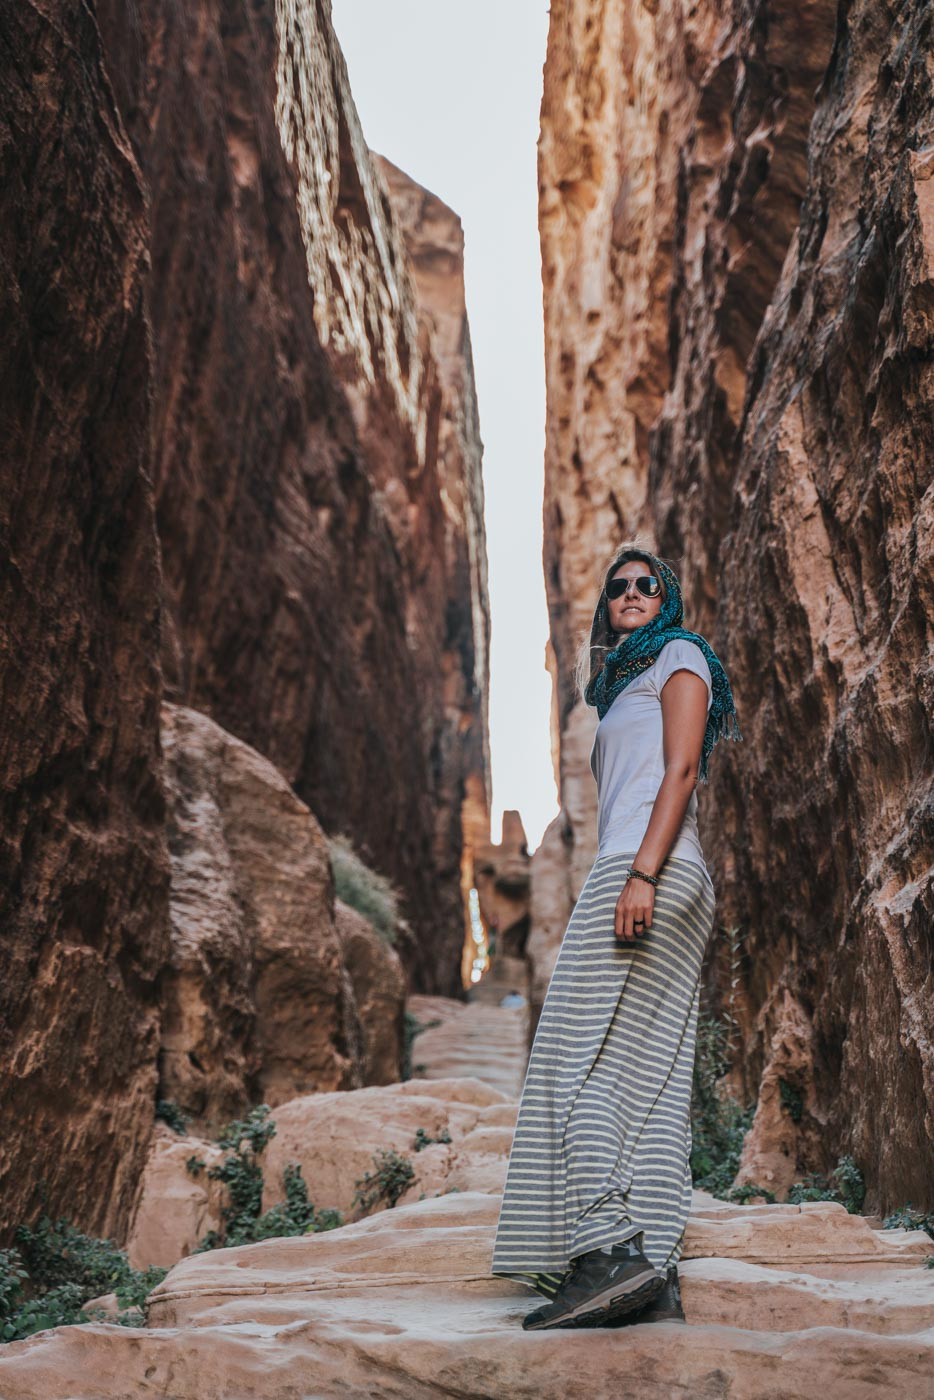 Jordan Tour: Oksana at Little Petra